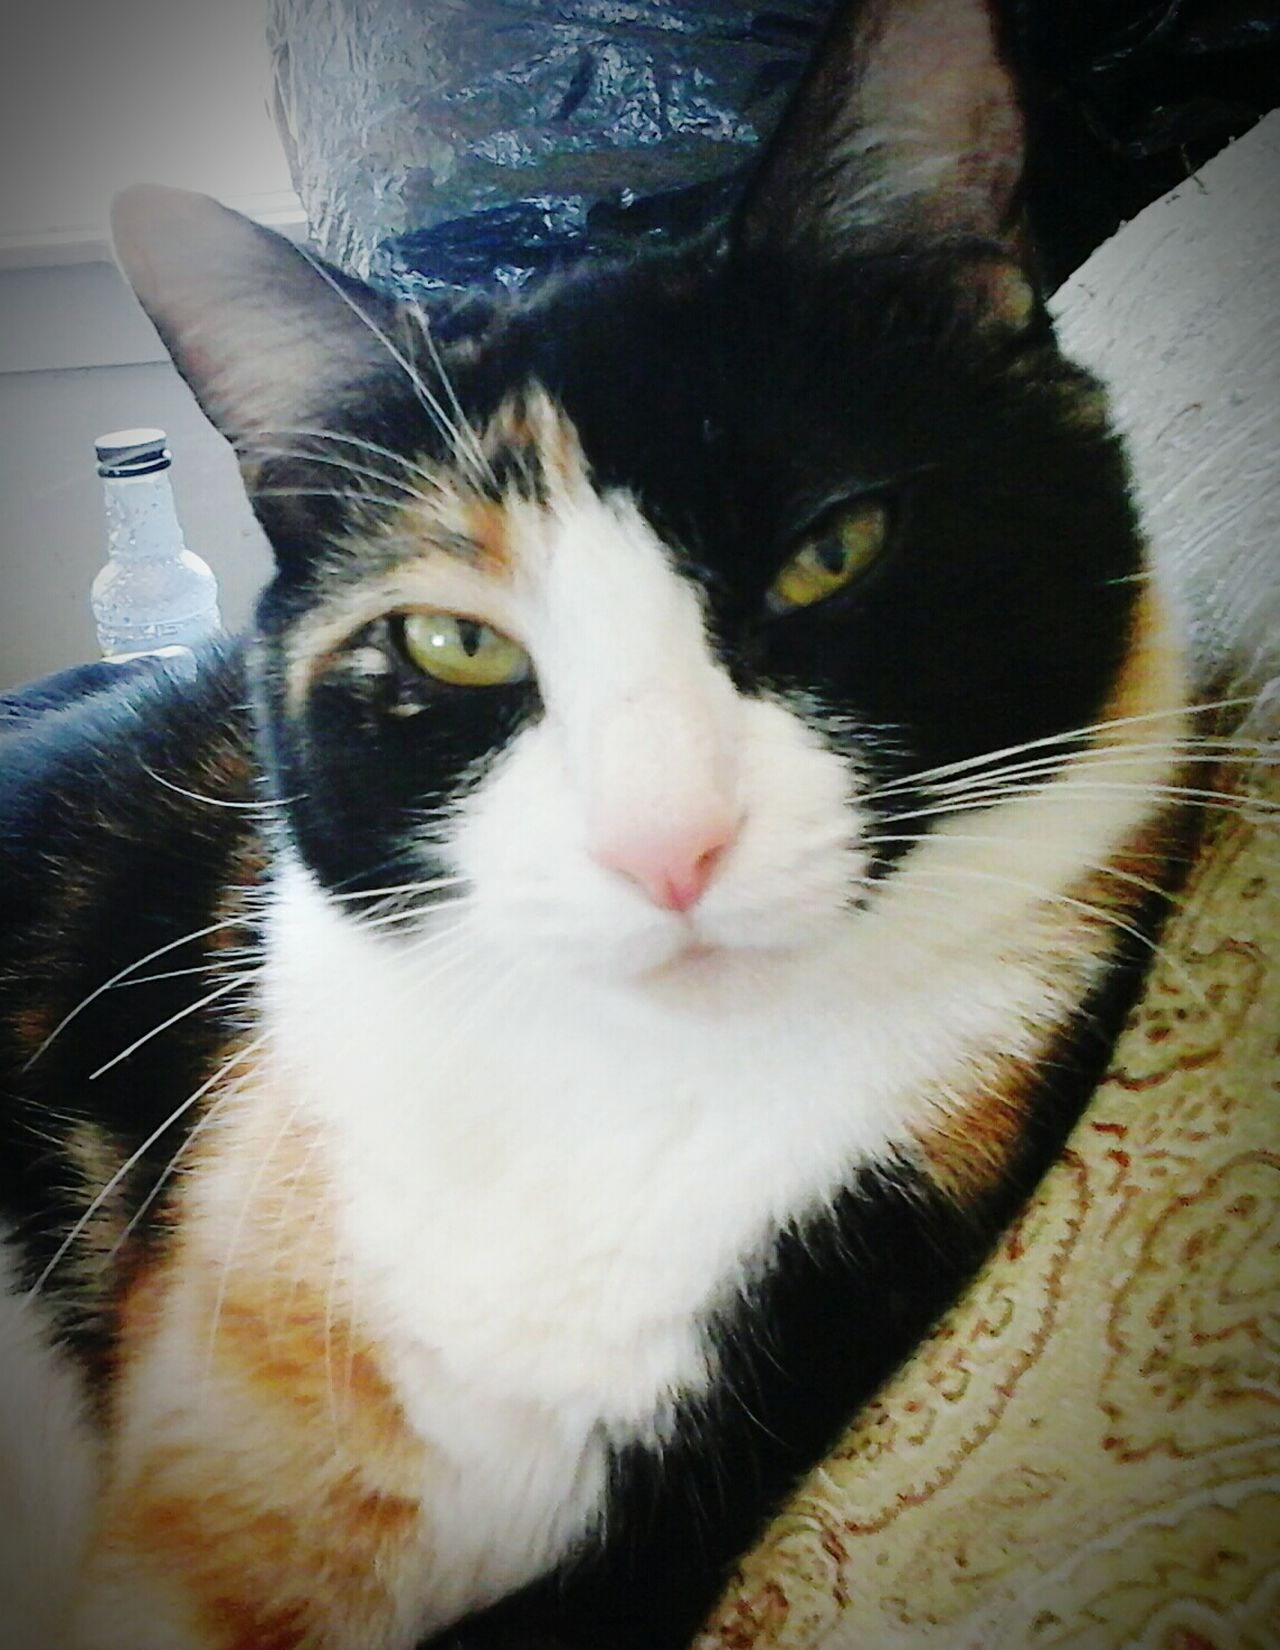 Beautiful Mowmow!! CALICO💚💙❤💛 calicocatsrule Catsoftheworld Bayareaphotography Check This Out Loveallanimals Paws And Purrs ❤️🔥❤️ Hello World Animals Catsofeyeem Pawsome Catlovers Cat Eyes Animal Photography Catstarcat